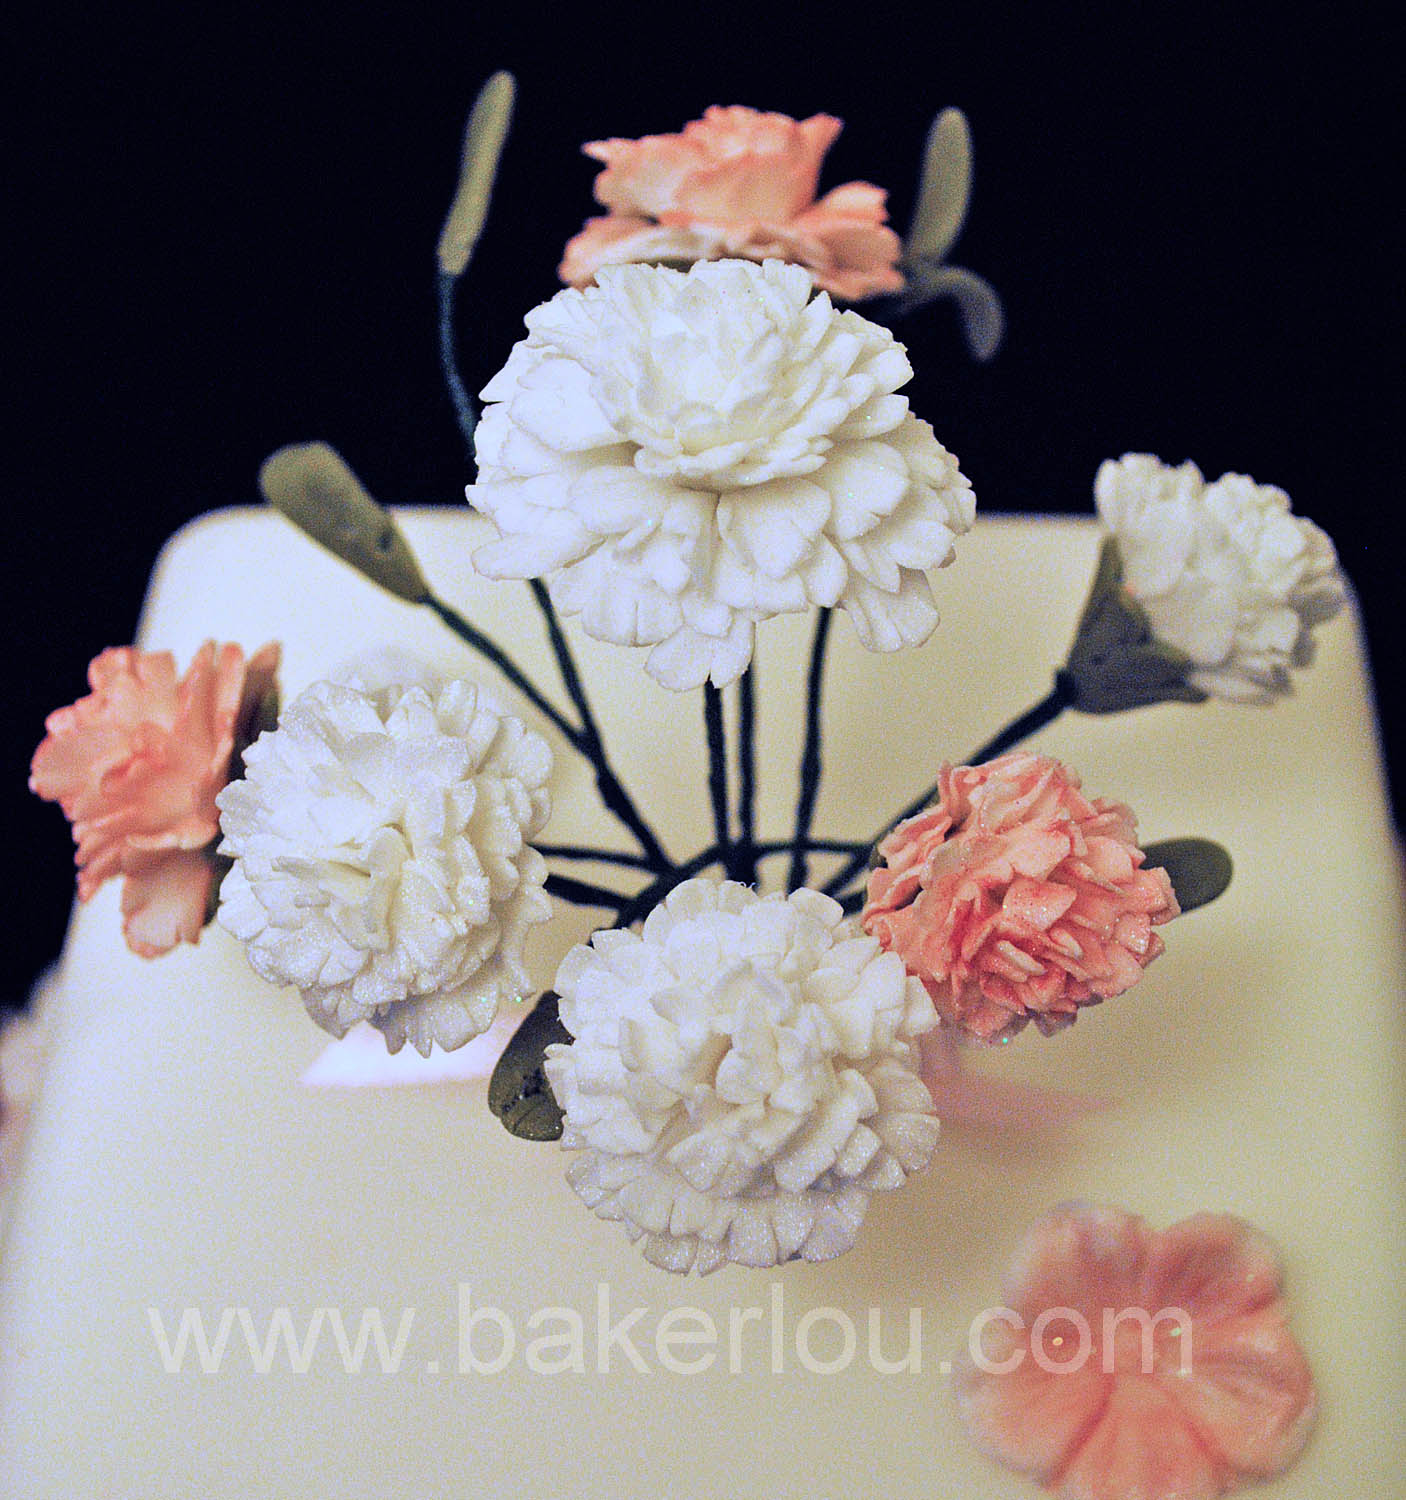 Bakerlou How To Make Sugar Carnations Step By Step Tutorial